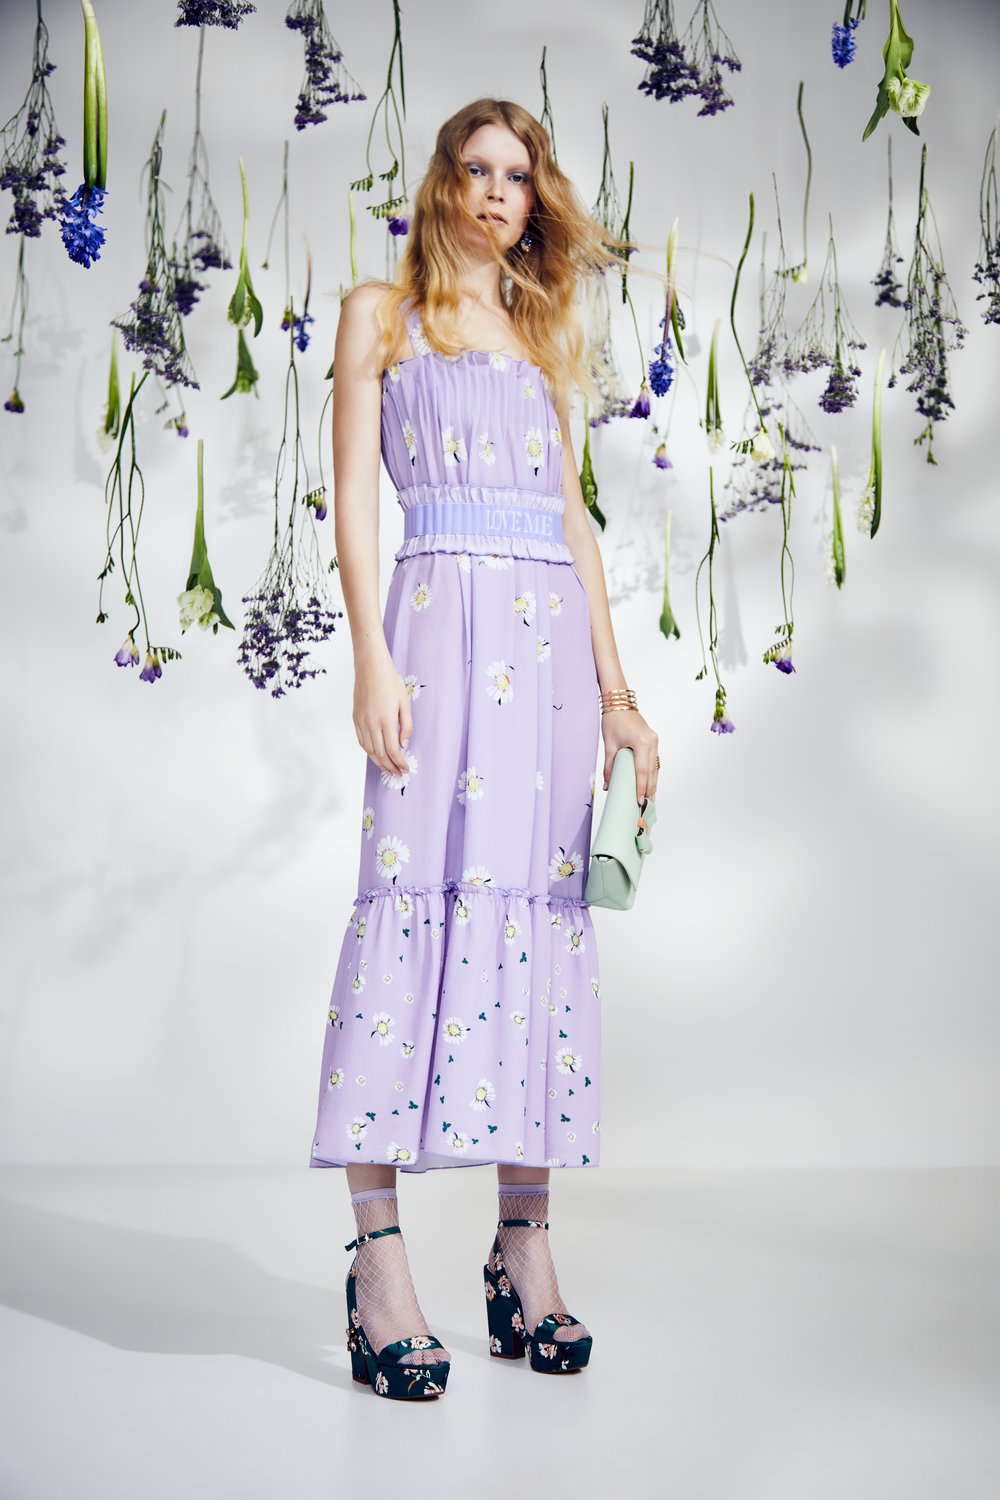 CW_12_Garden_Party_outfit_013149_retouch.jpg